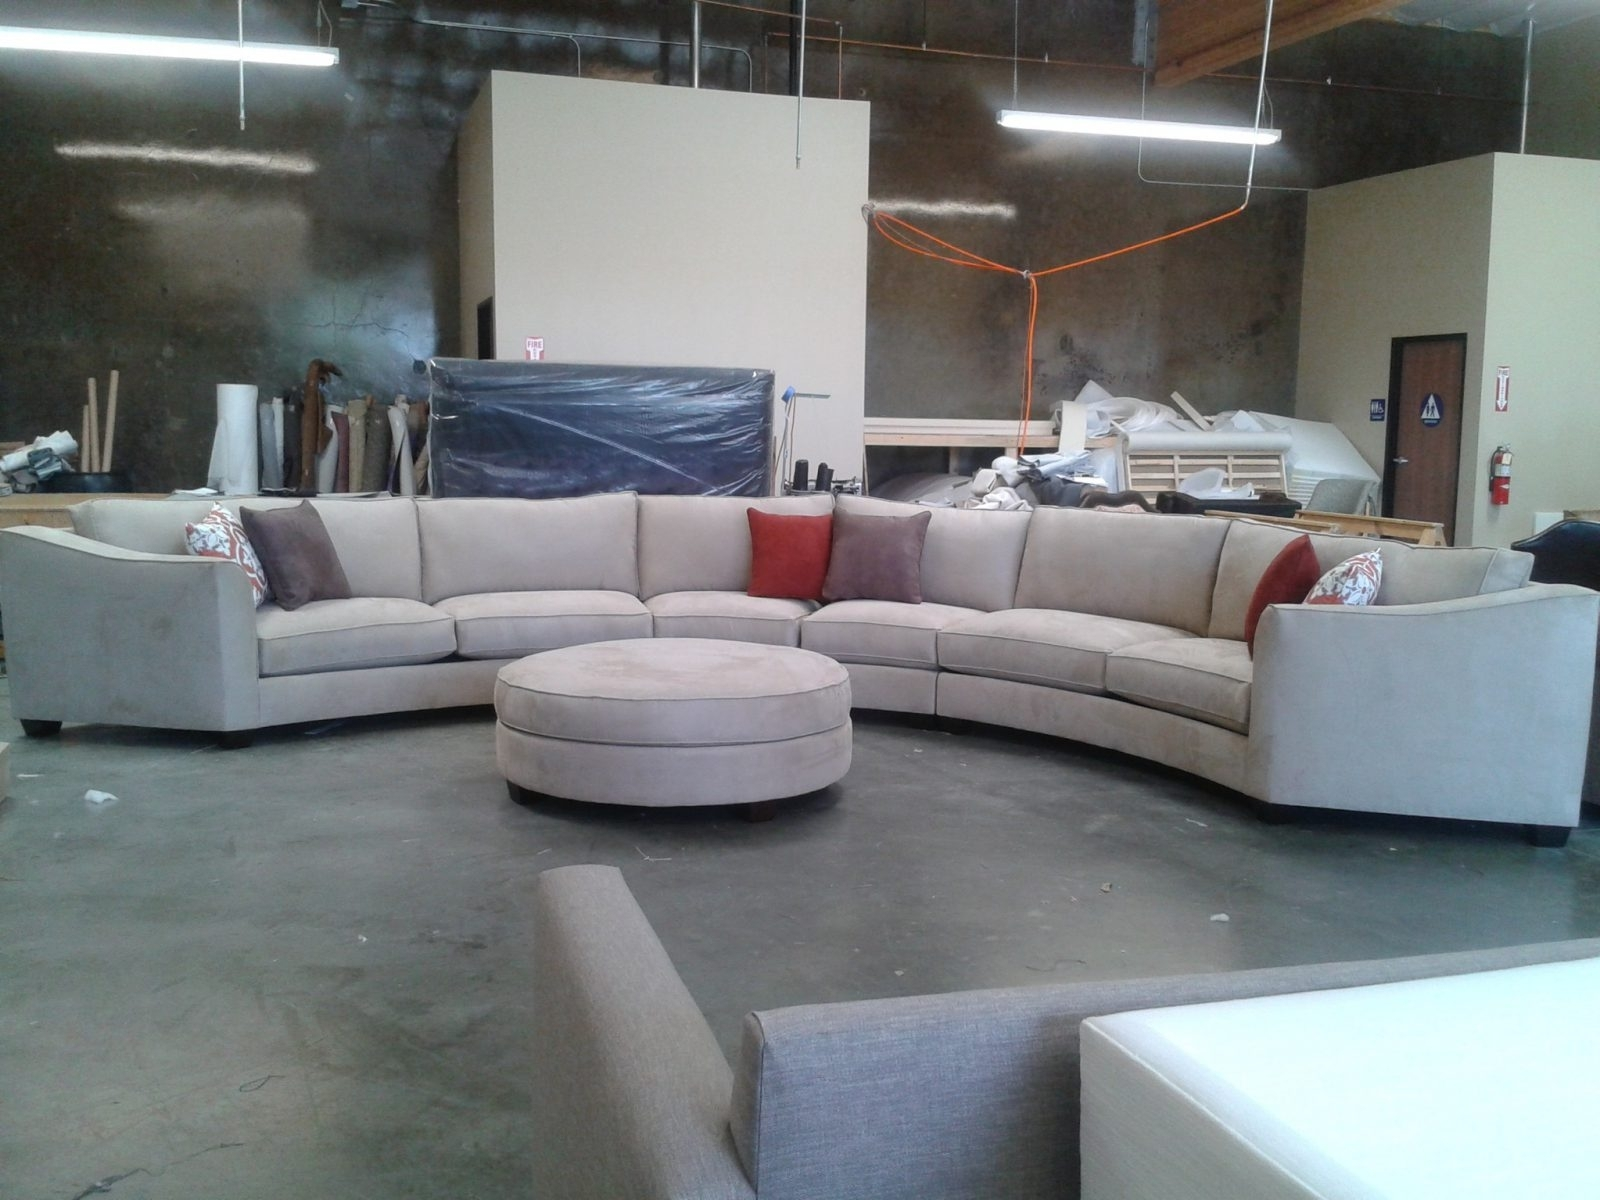 Couches Toronto. G Sofa Big Style Modern Sectional Sofas Toronto for Kitchener Sectional Sofas (Image 2 of 10)